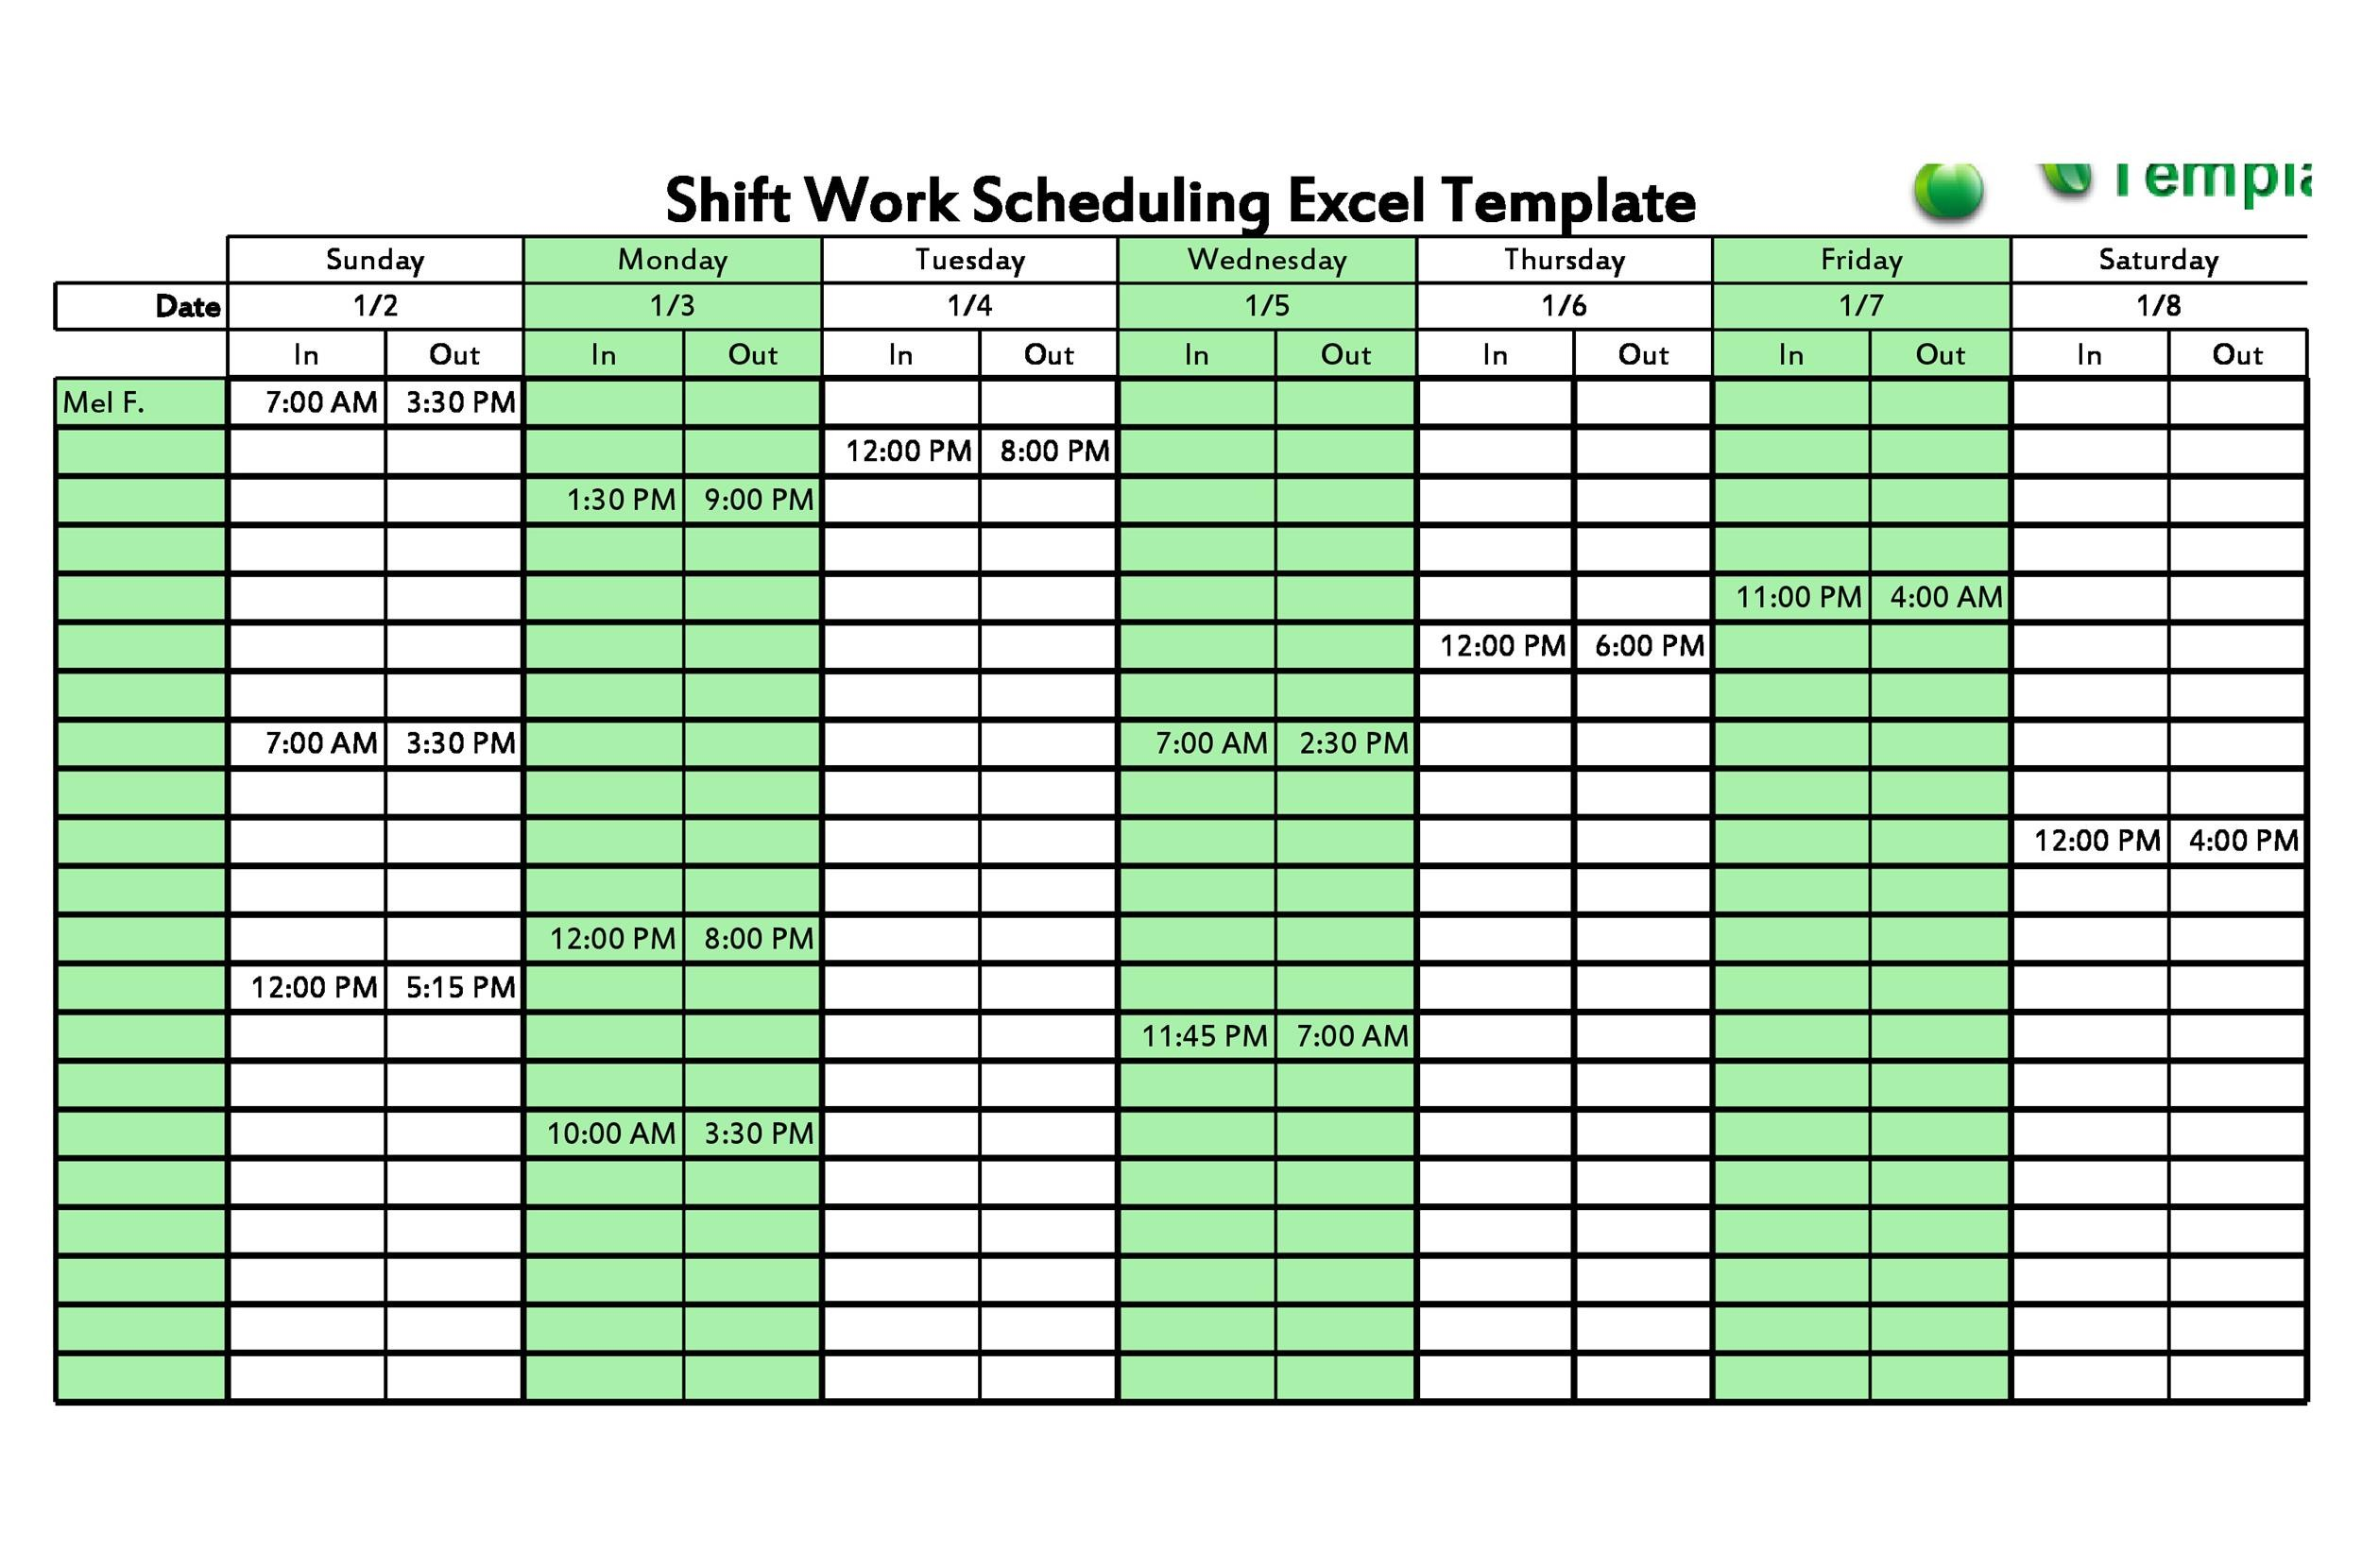 Dupont Shift Schedule Templats For Any Company Free  Template Lab